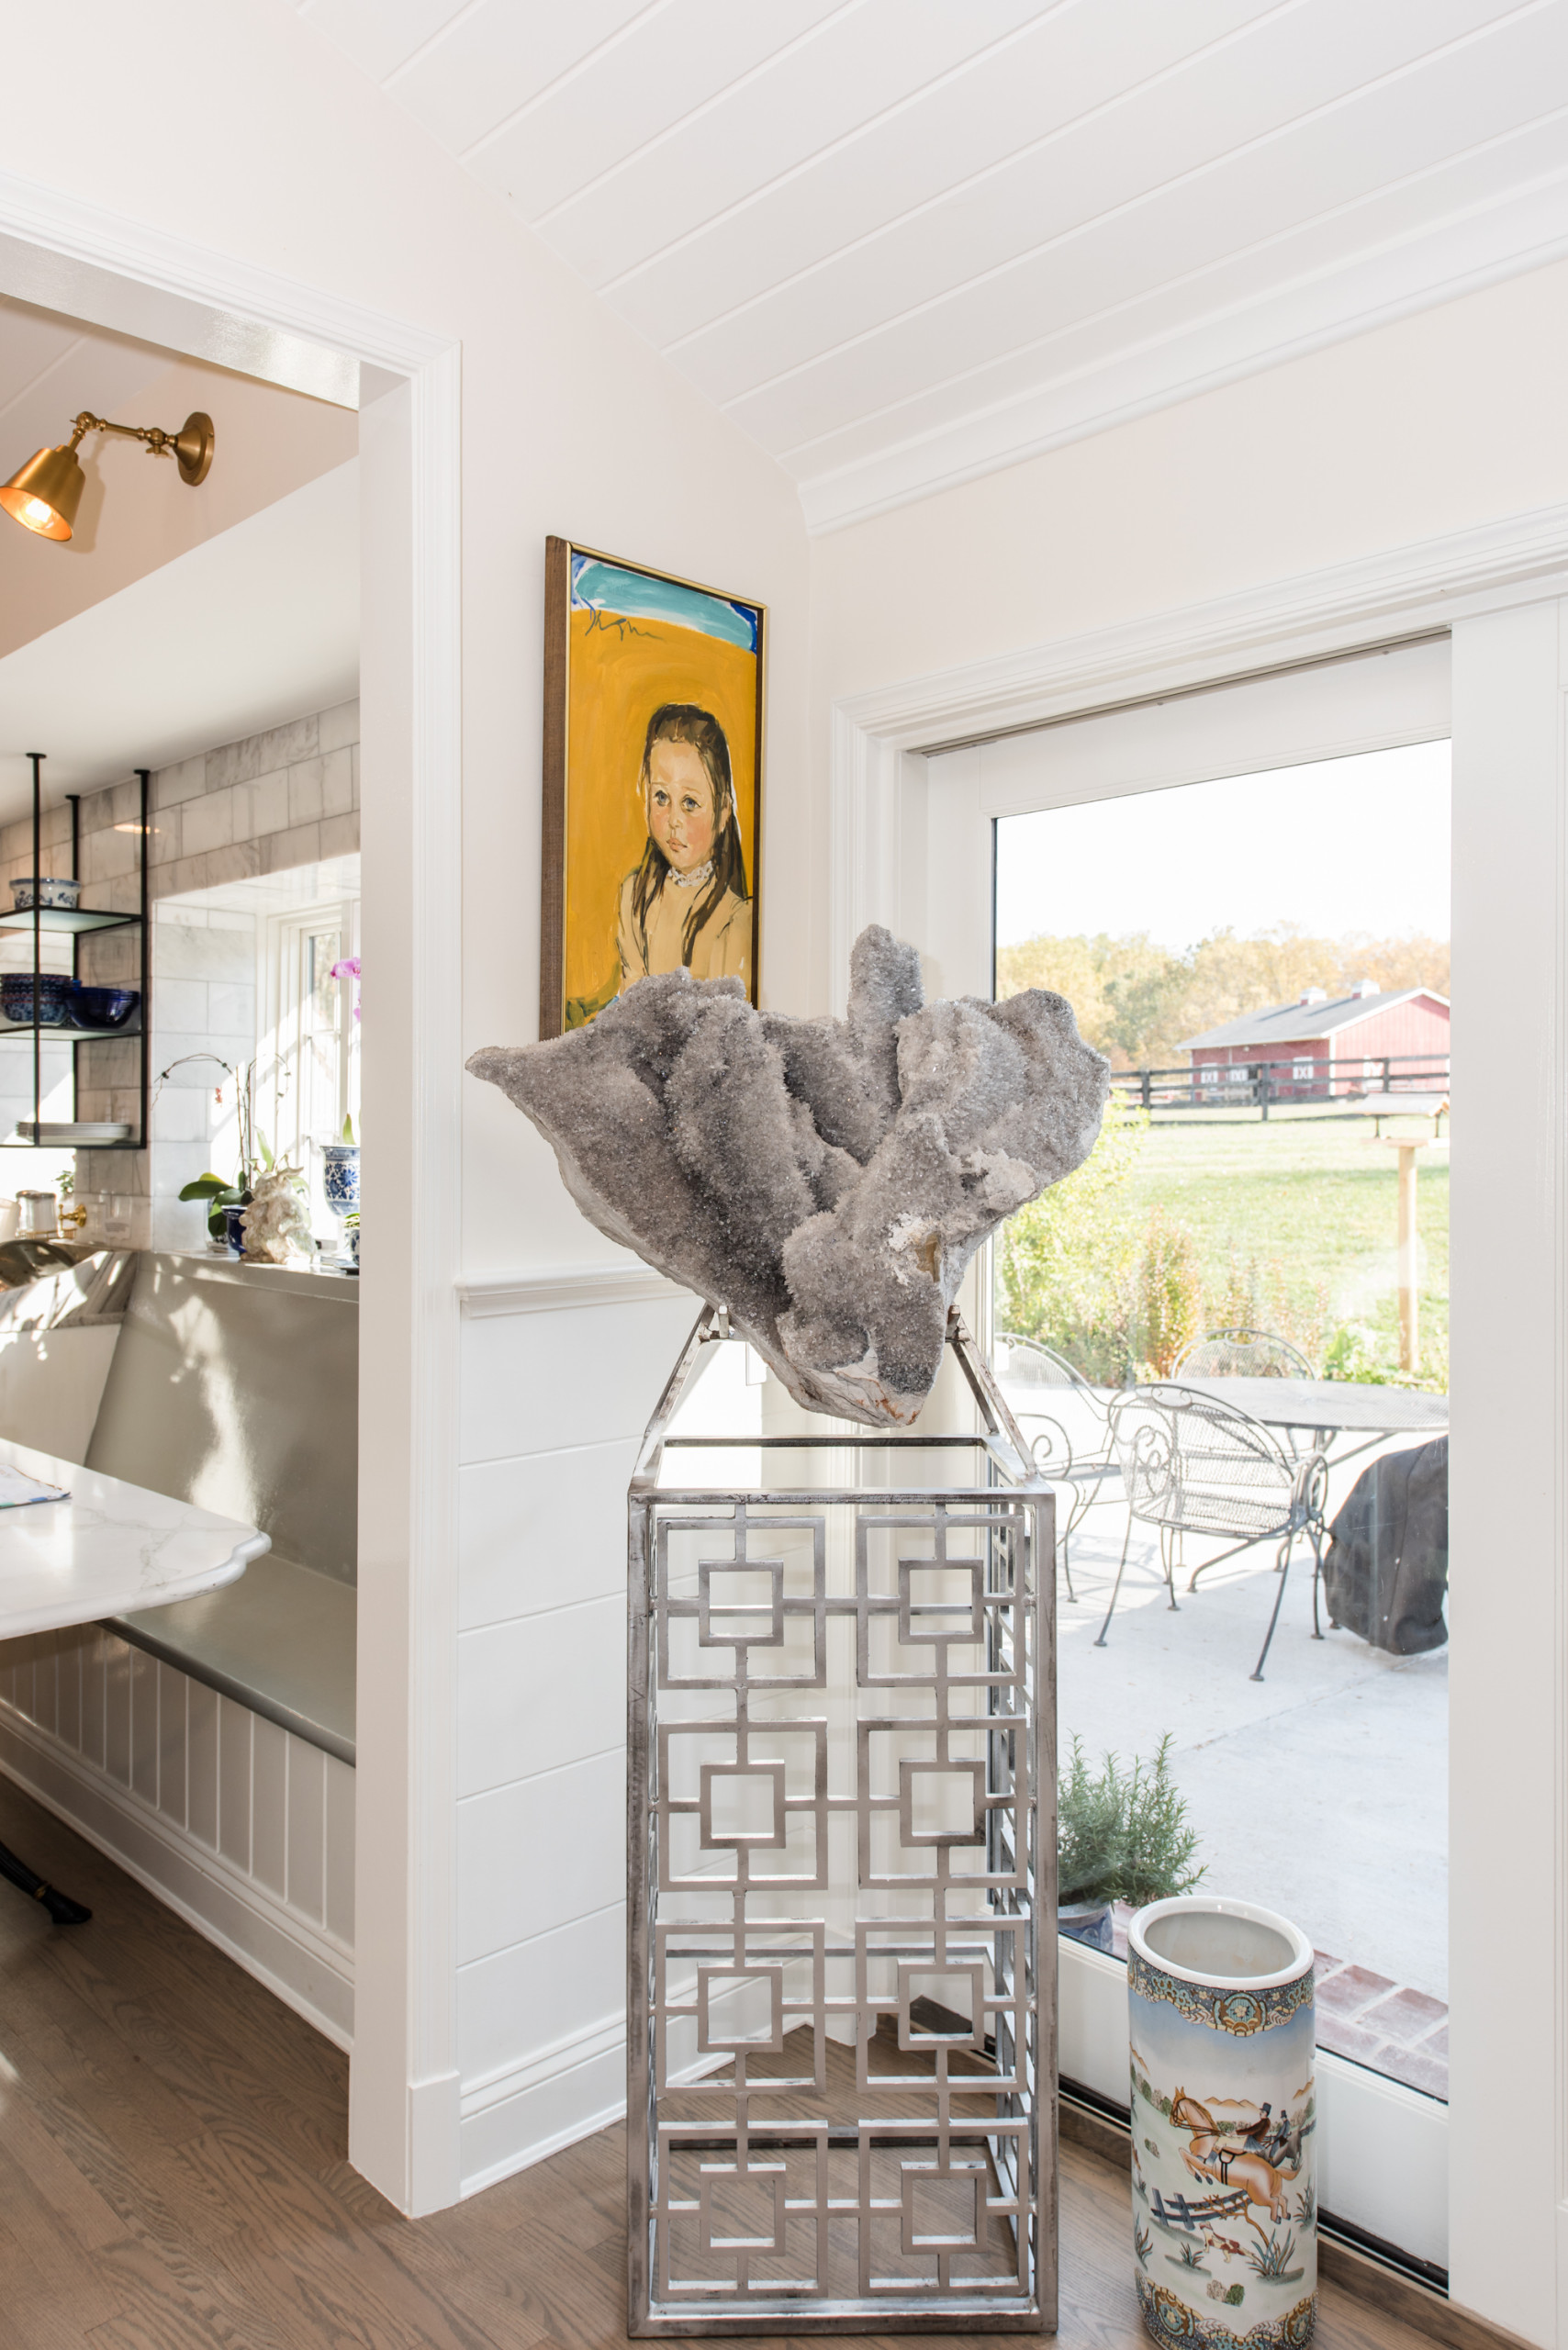 Barnesville, MD Eclectic-contemporary House Remodel